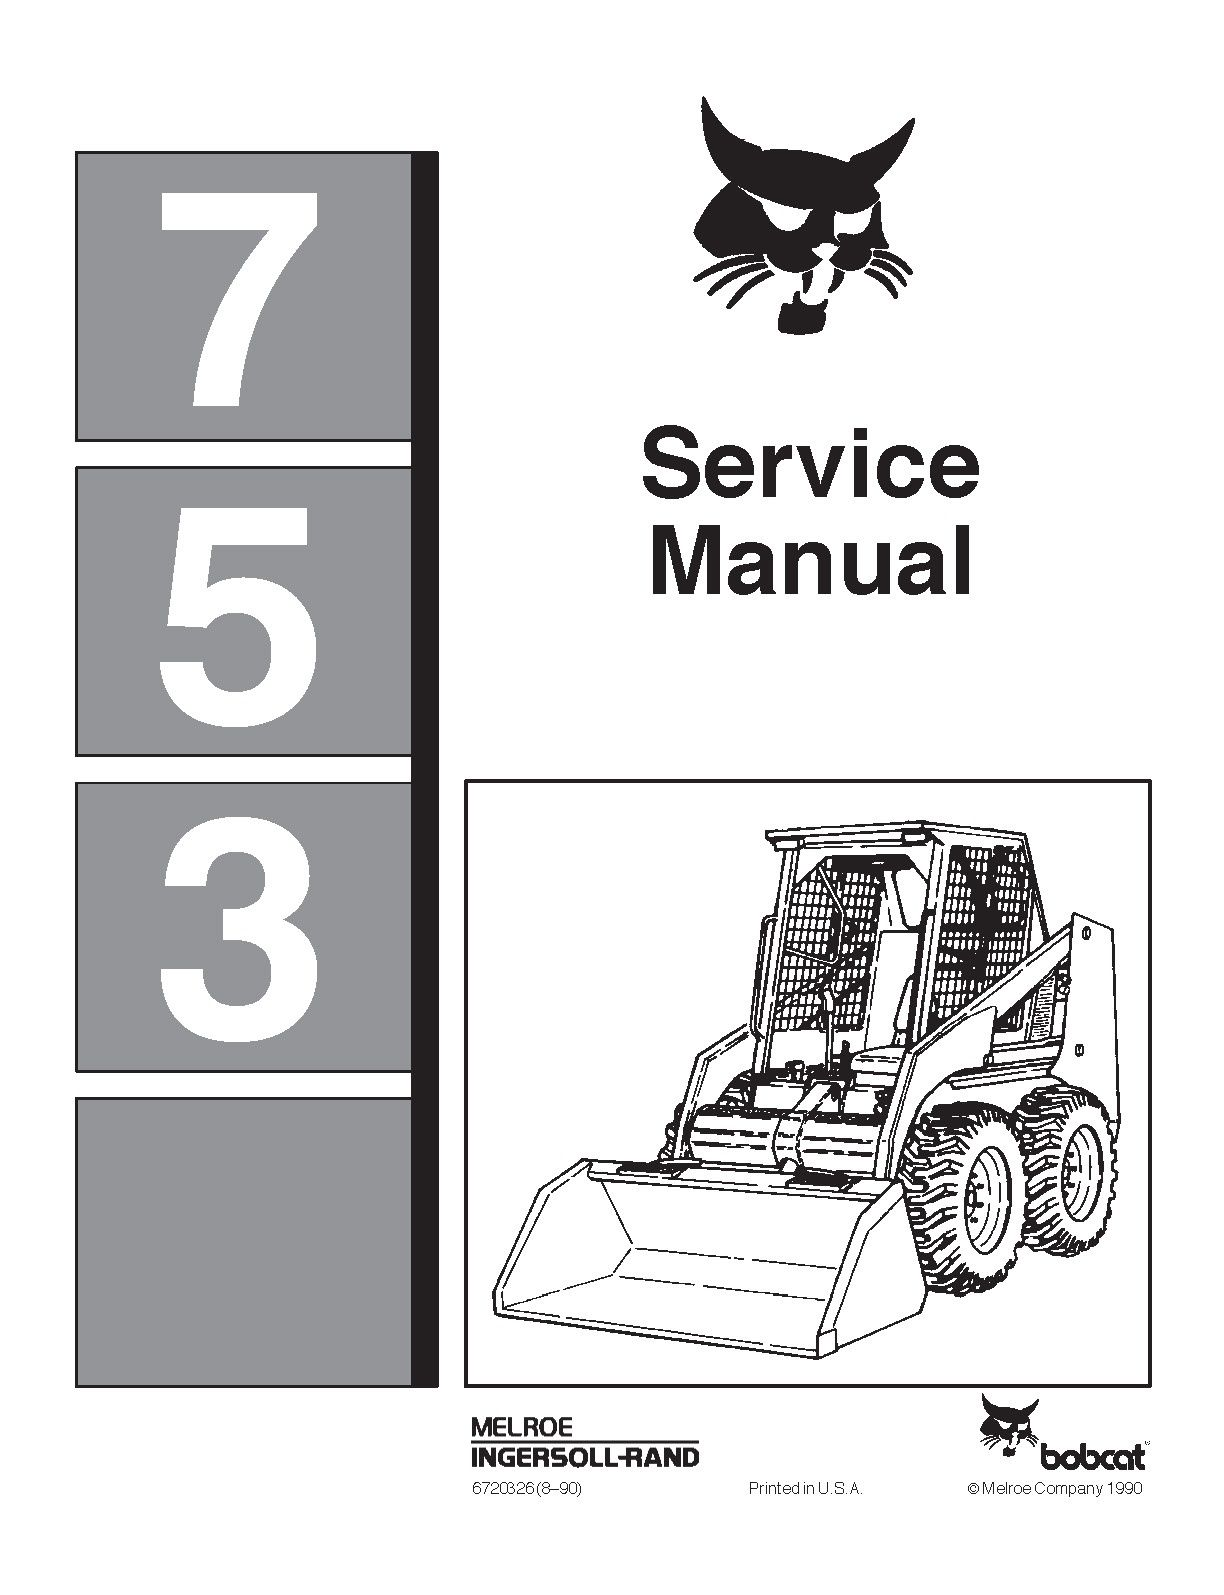 bobcat 753 skid steer wiring diagram wiring diagram data site bobcat 753 starter wiring diagram bobcat 753 wiring diagram [ 1224 x 1595 Pixel ]